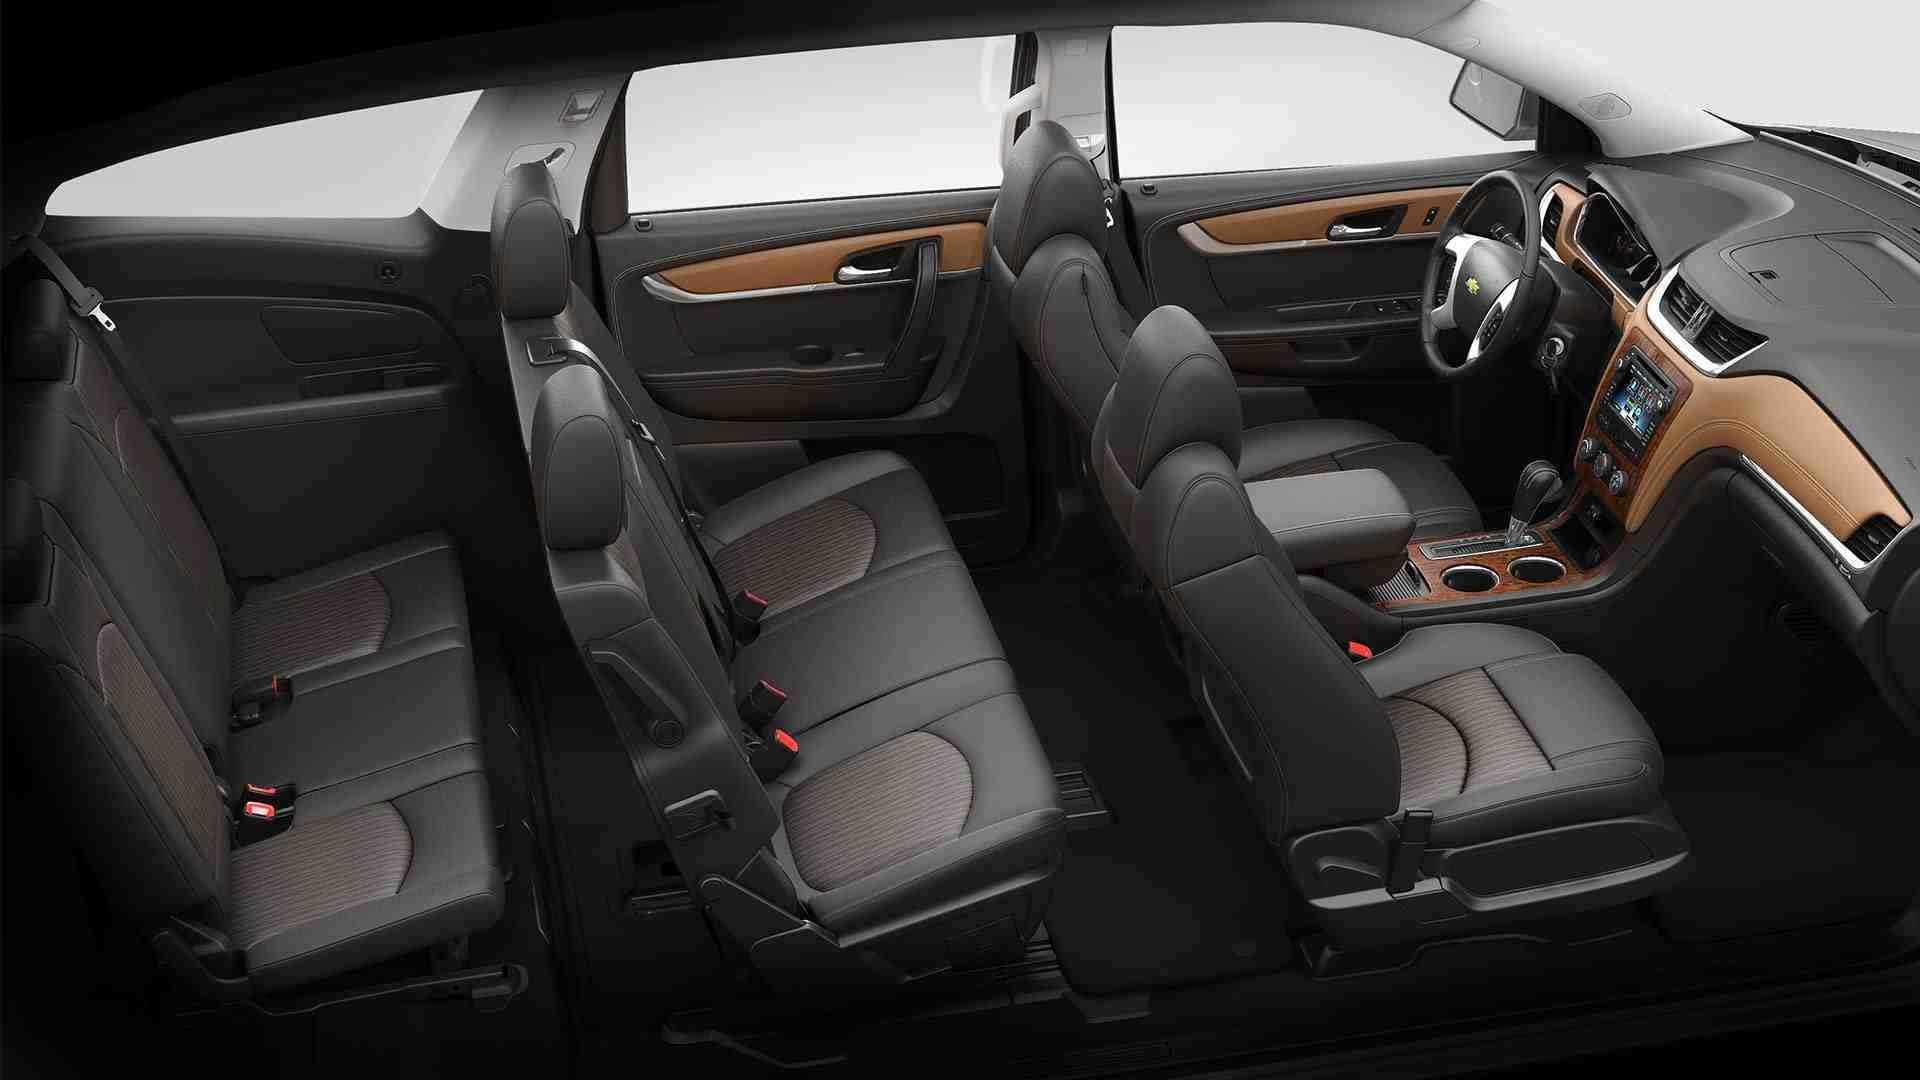 chevy traverse interior our vehicles pinterest. Black Bedroom Furniture Sets. Home Design Ideas